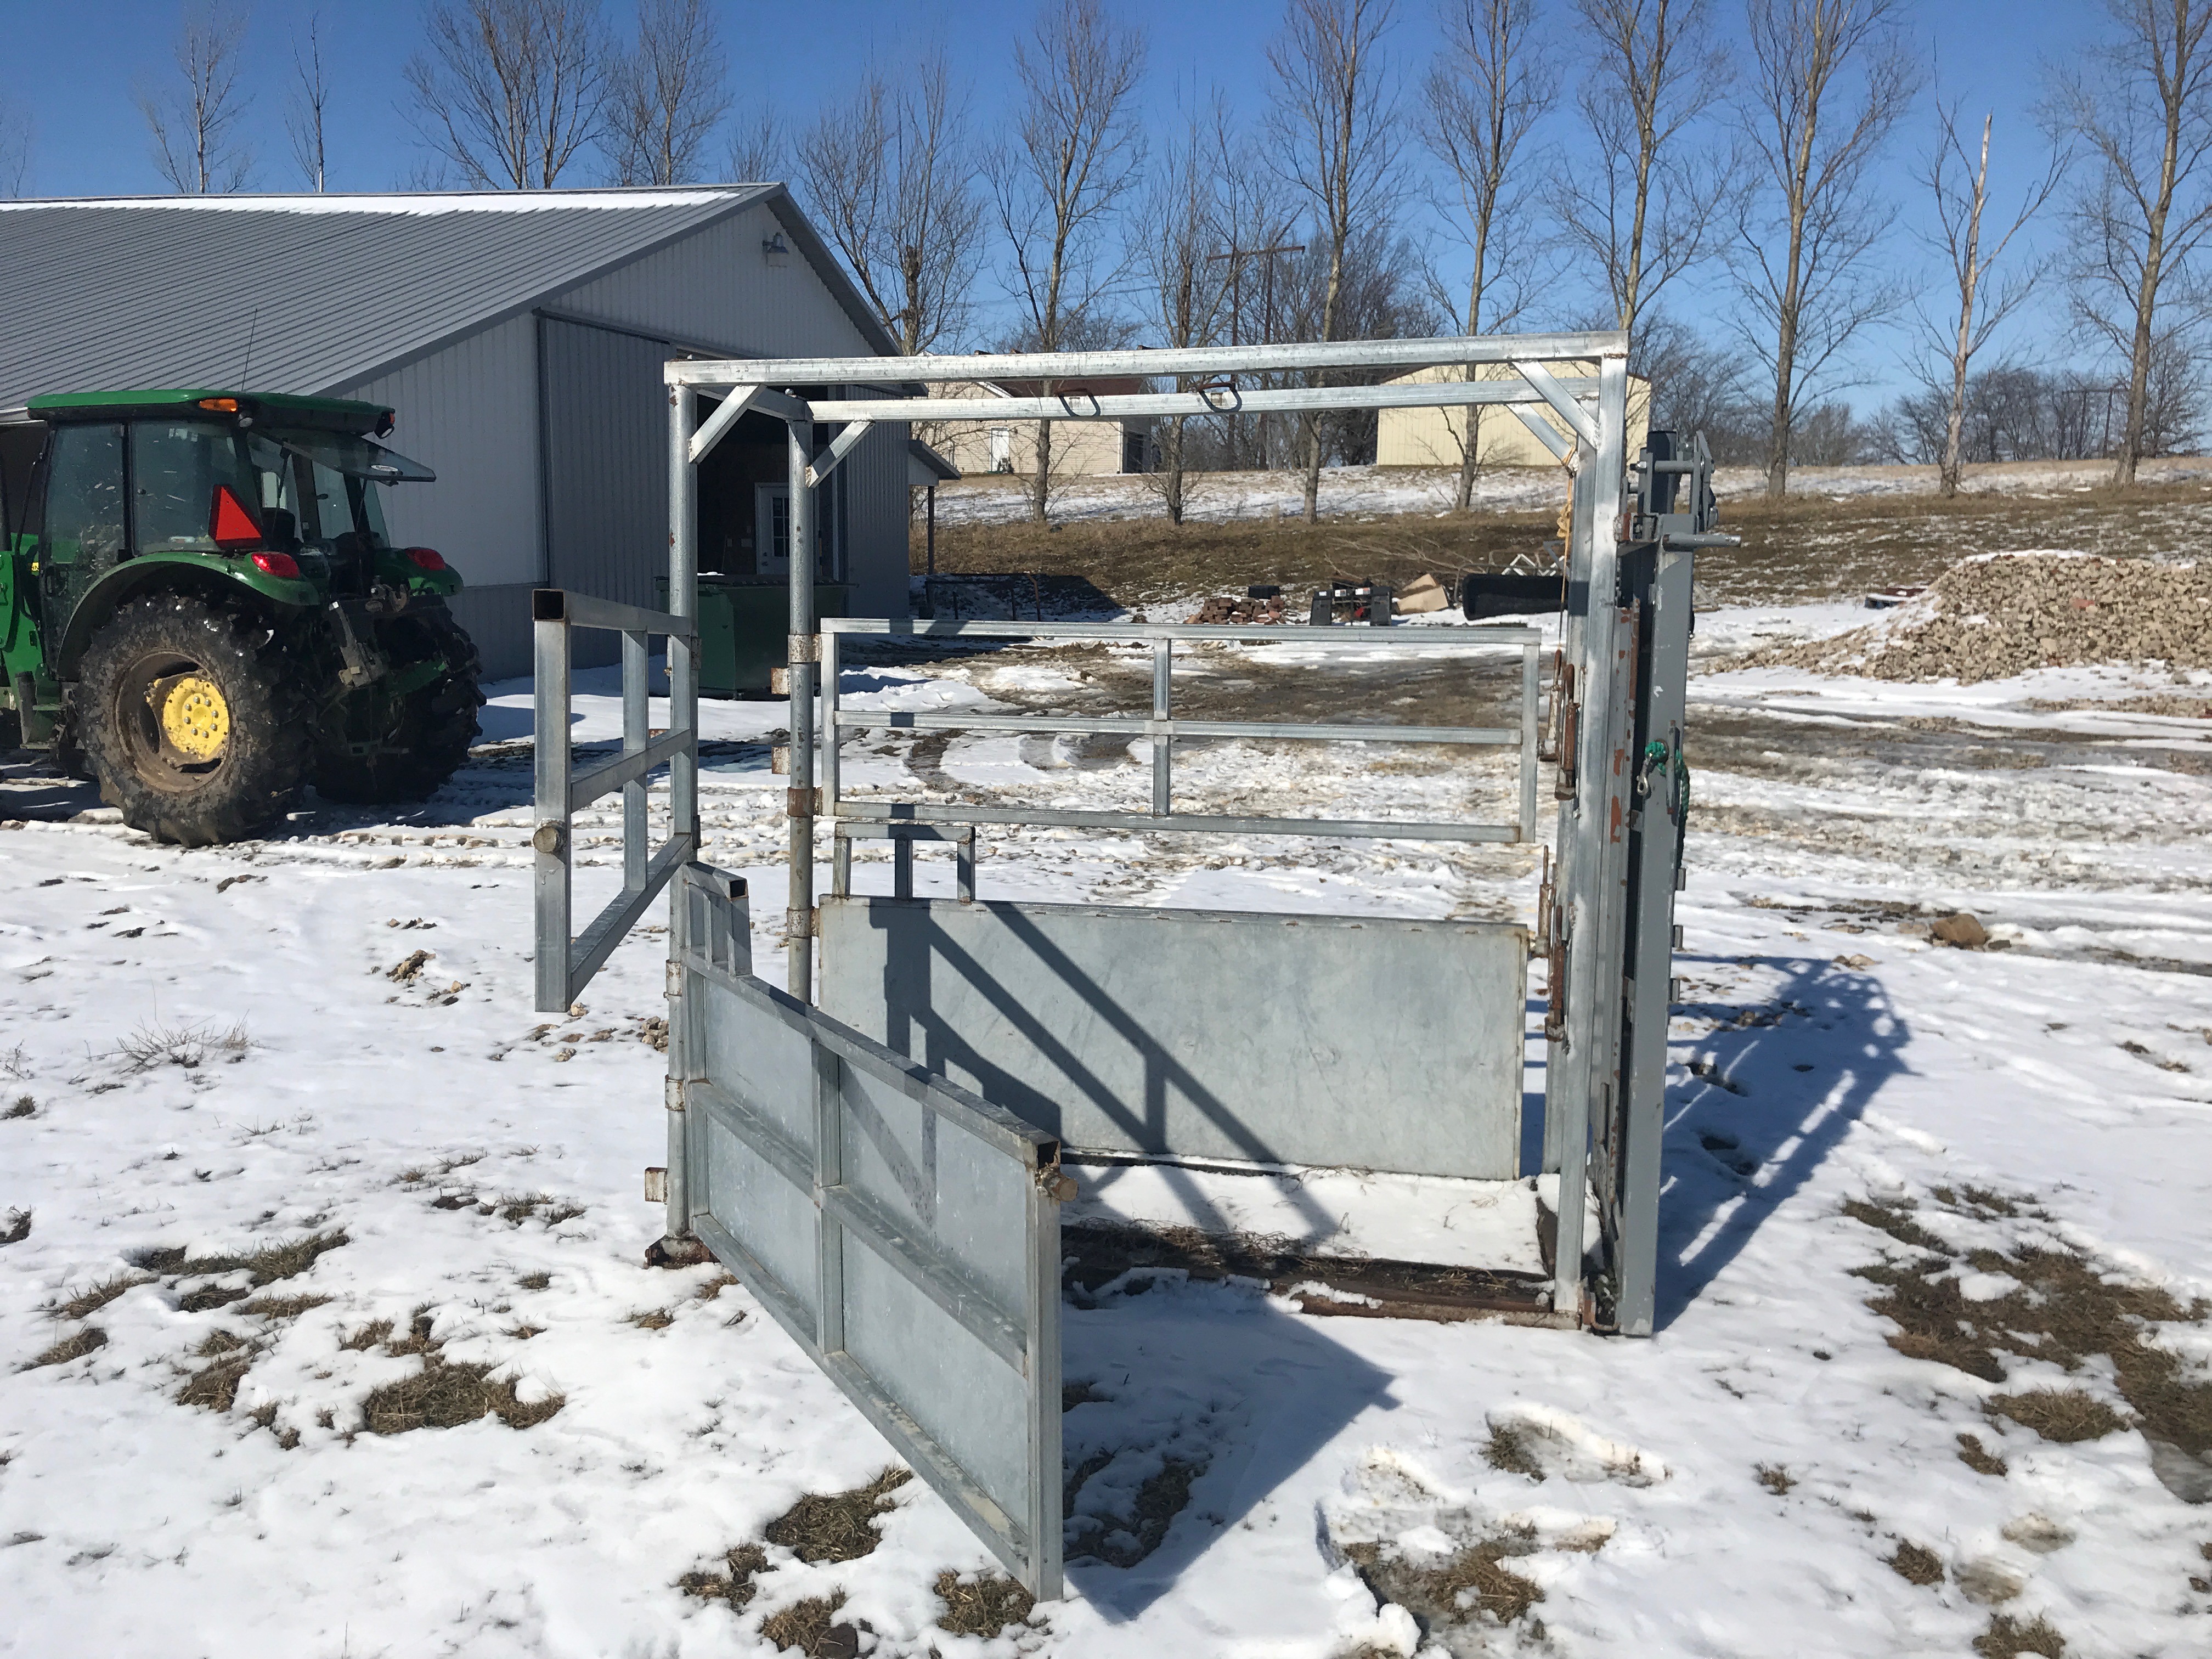 River Rode Cattle Chute, Manual Catch, Double Side Door, Wood Floor, (NICE CONDITION) - Image 4 of 4